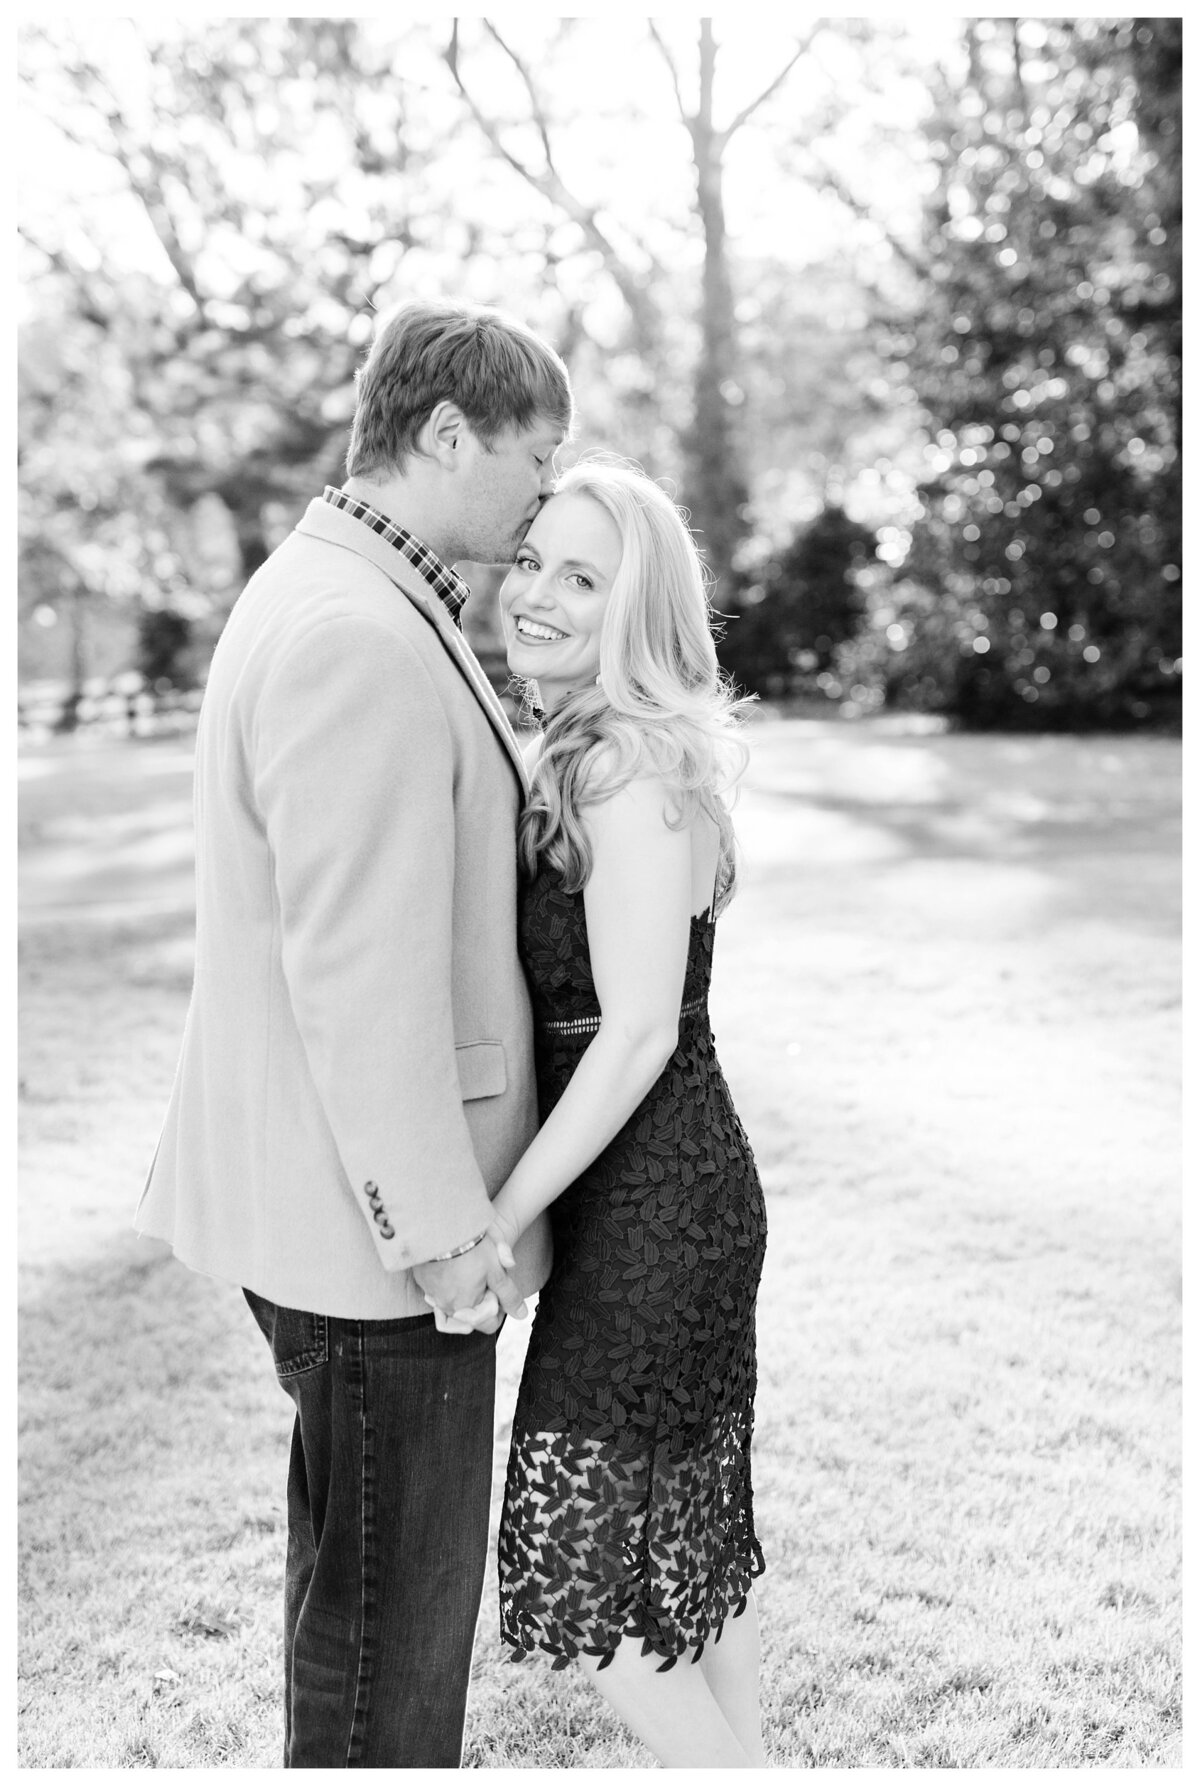 canady-engagements-atlanta-wedding-photographer-15